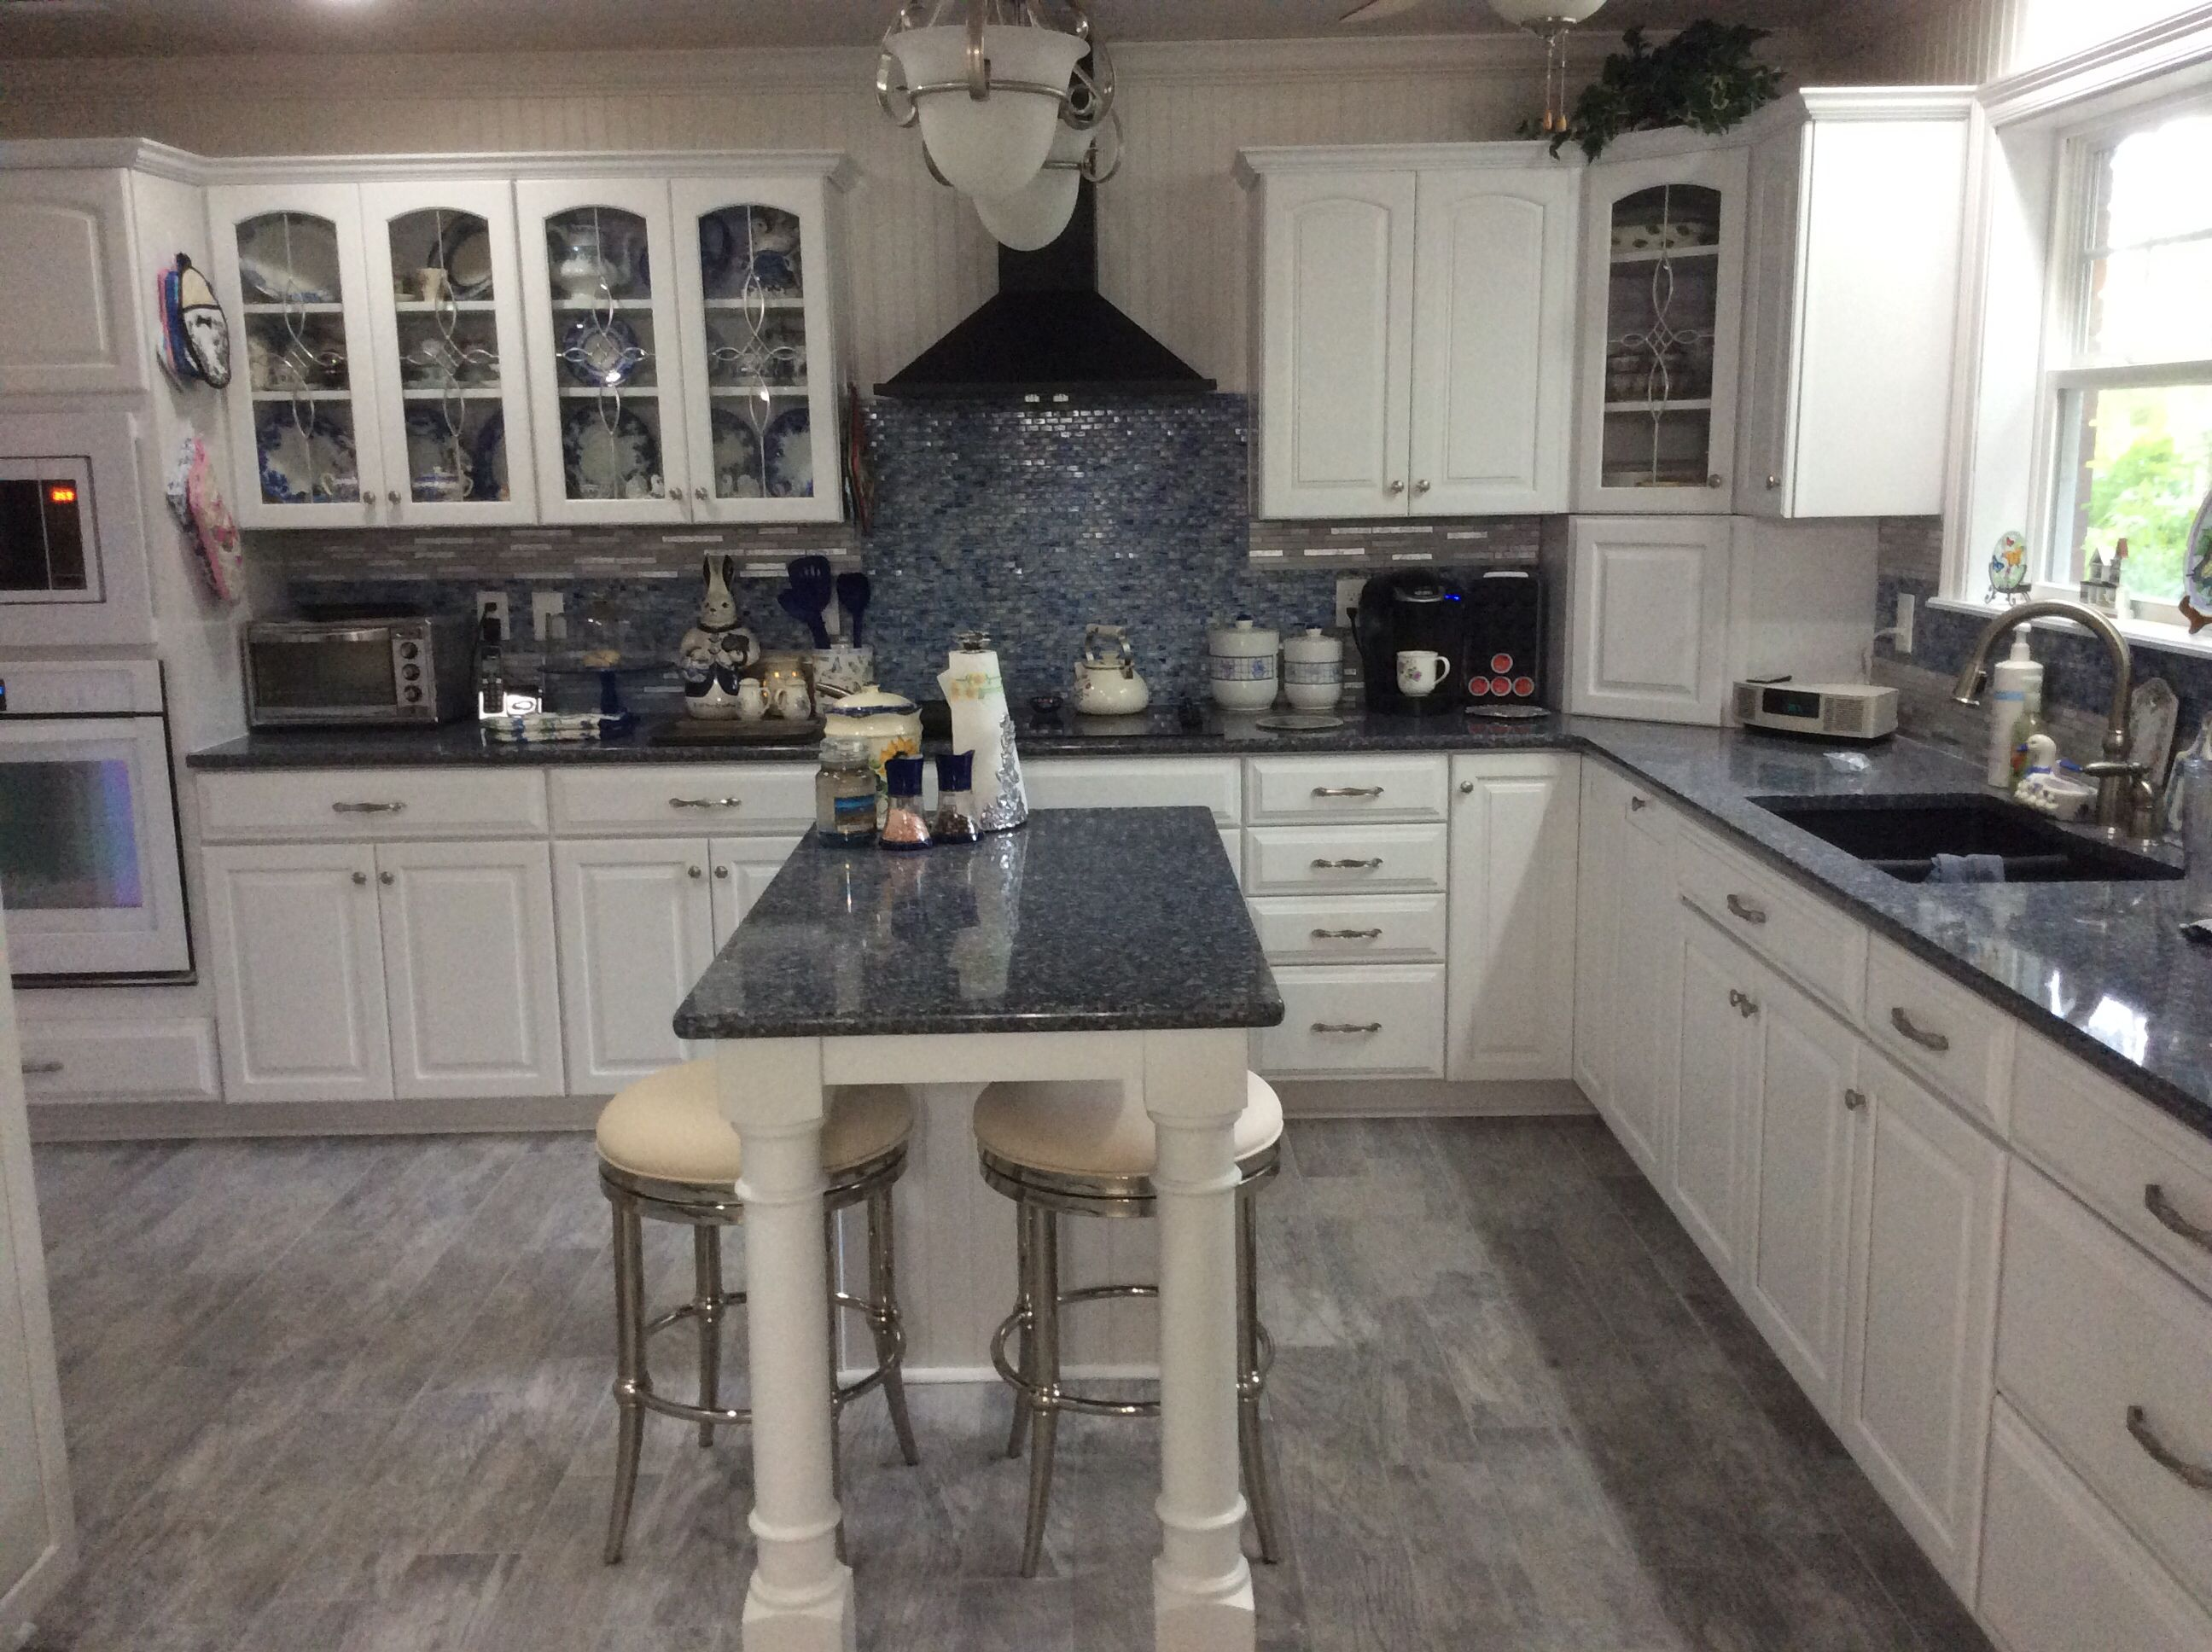 Gray Kitchen Floors Marazzi Montagna Dapple Gray 6 In X 24 In Porcelain Floor And